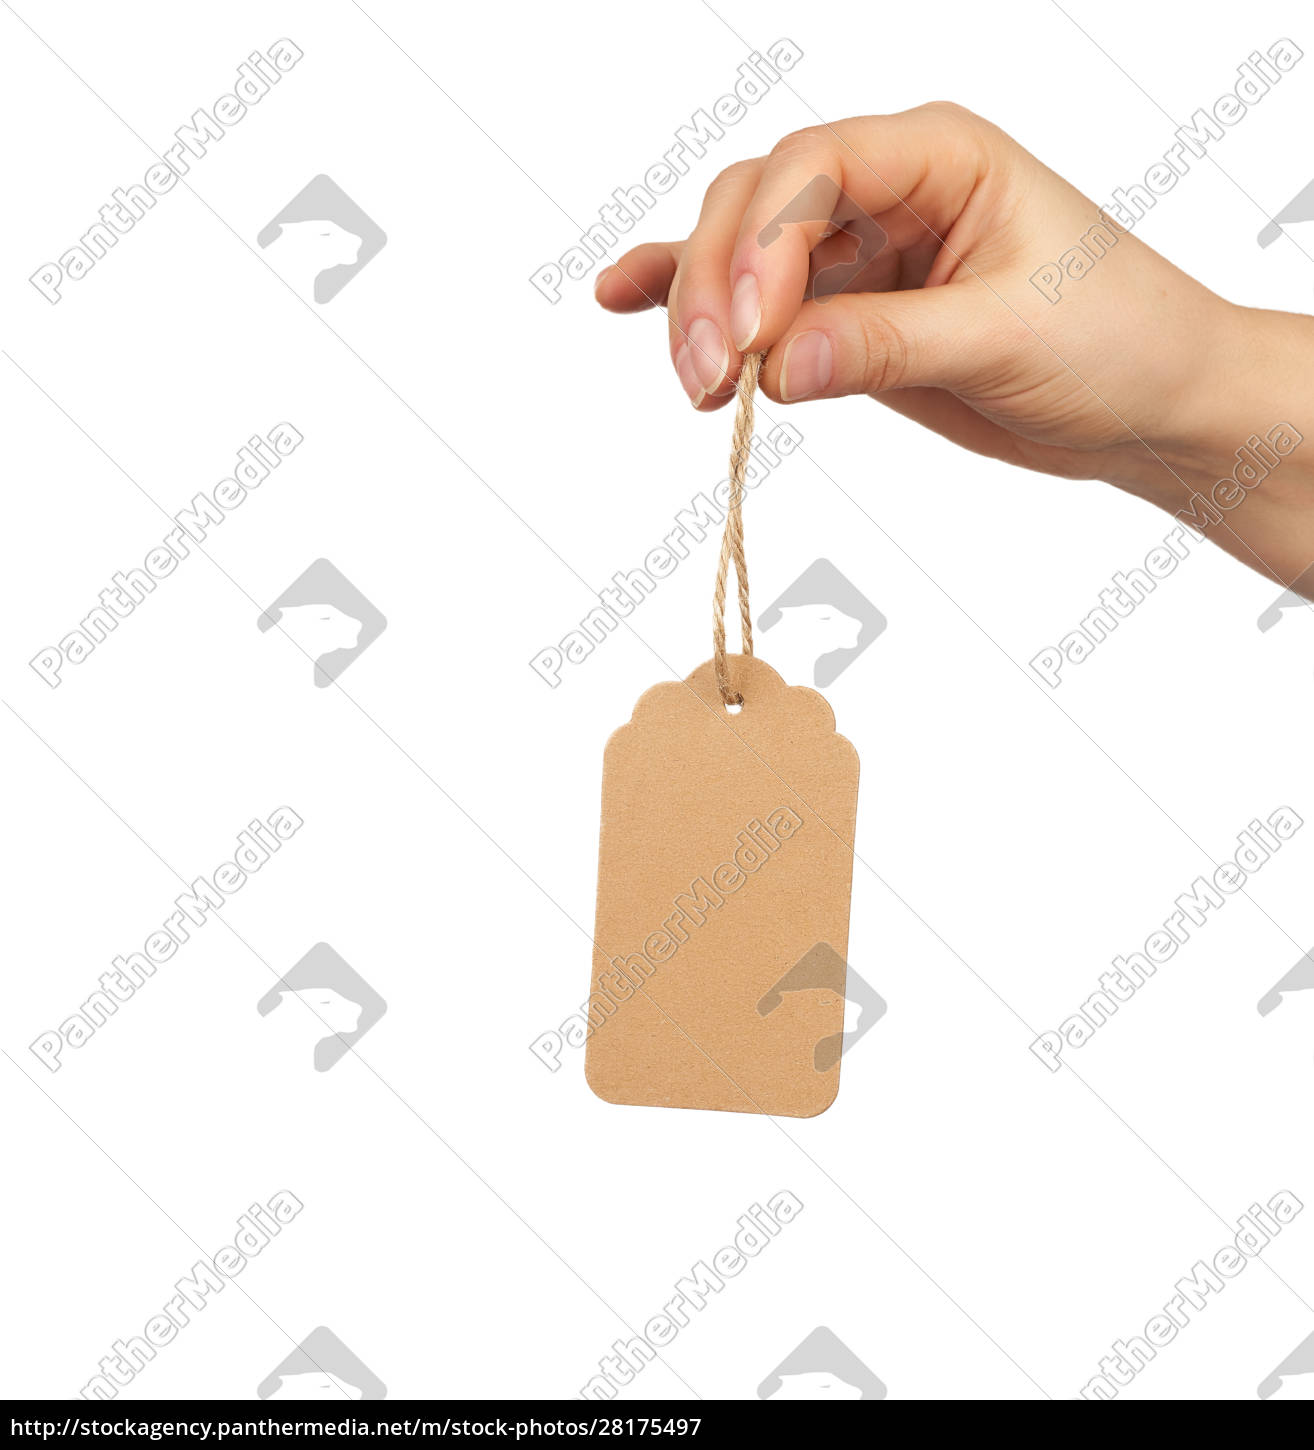 female, hand, holds, a, cardboard, price - 28175497